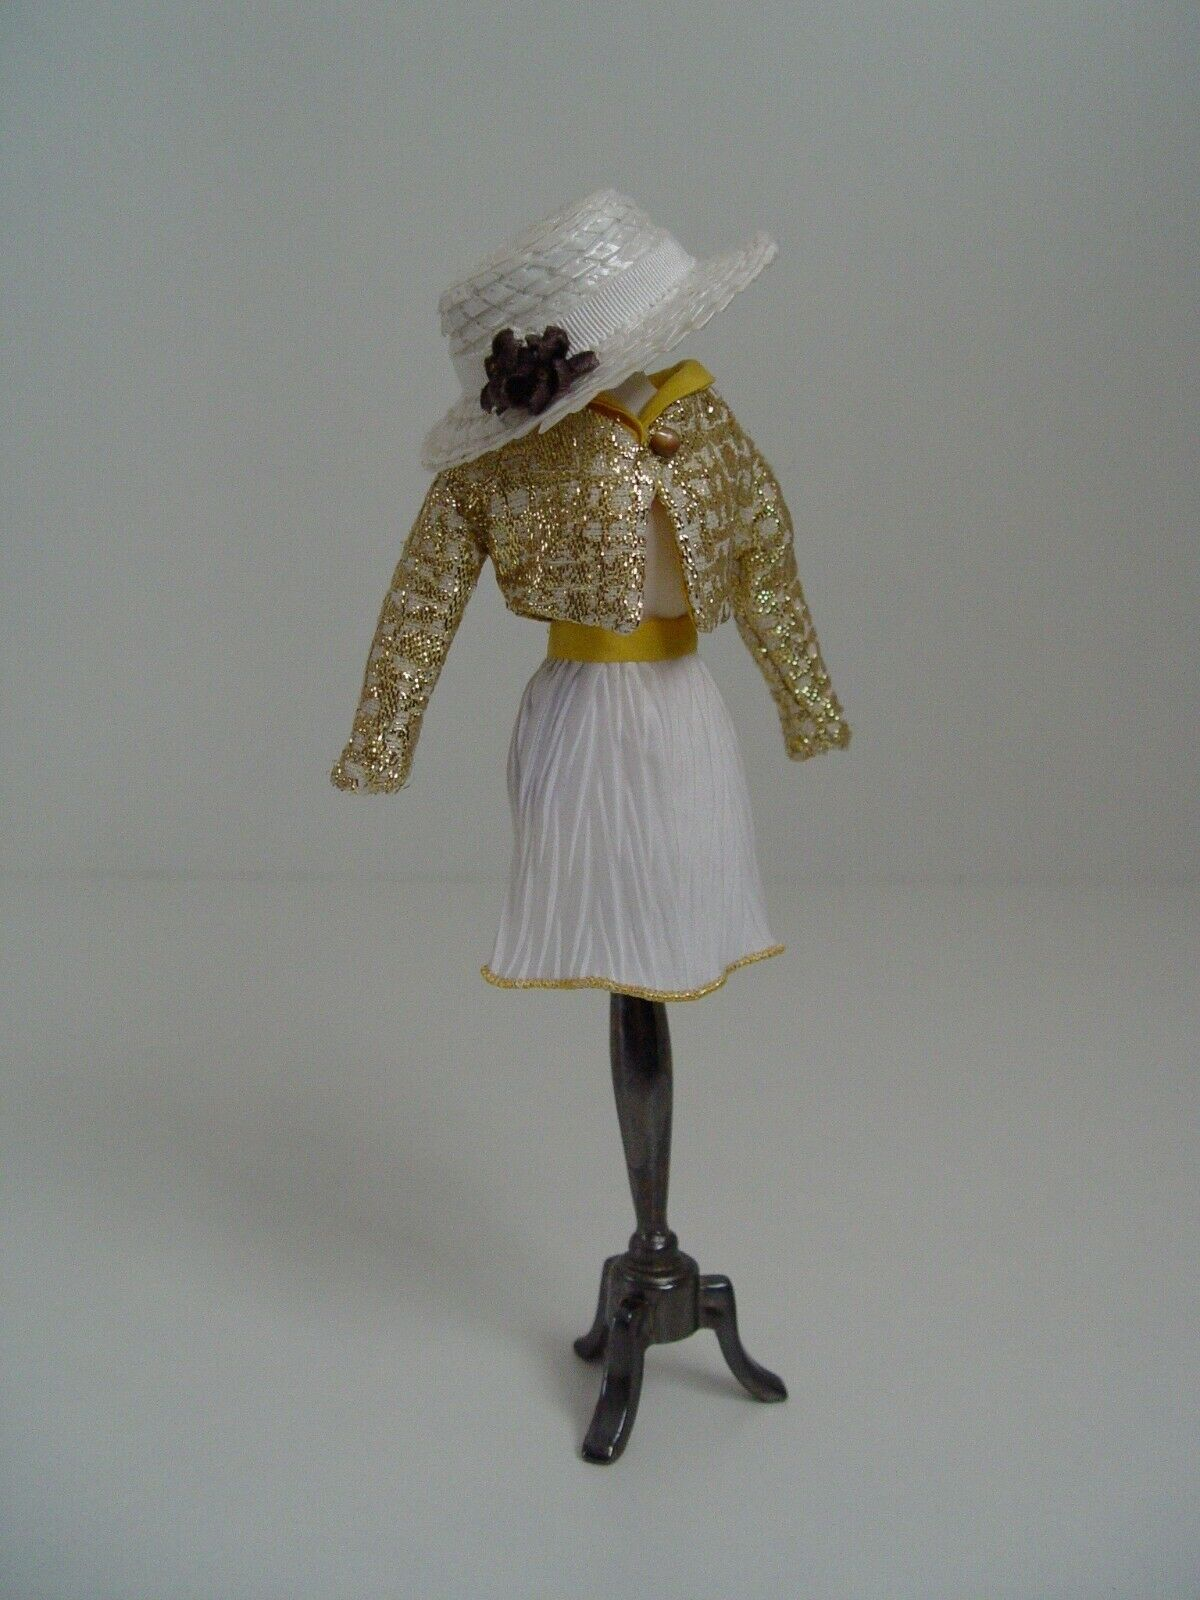 Mdvanii  Capri   Dheei poupée doll Gold jacket skirt hat Paris France